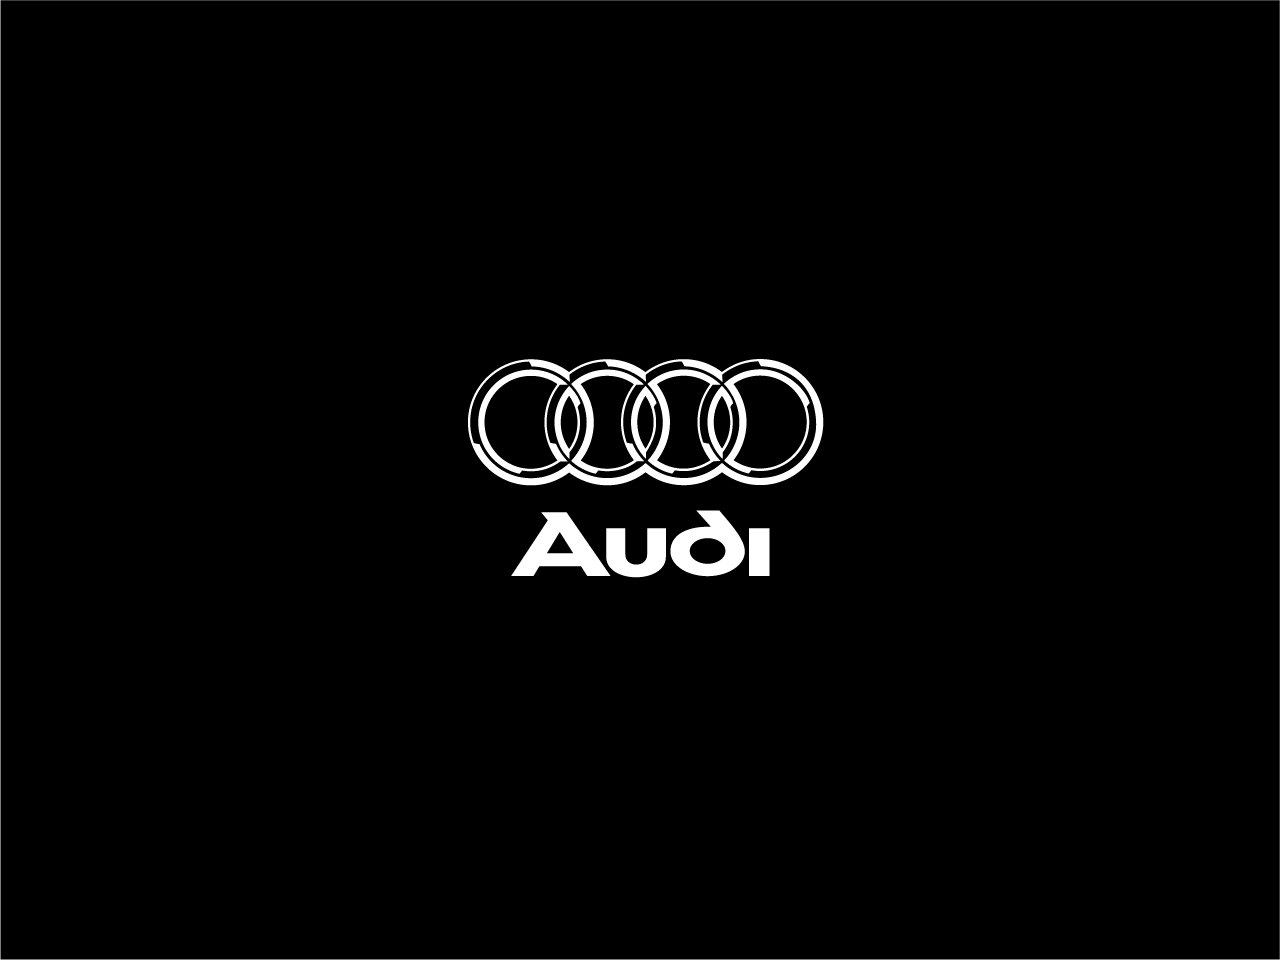 audi logo hd wallpaper wallpapersafari. Black Bedroom Furniture Sets. Home Design Ideas